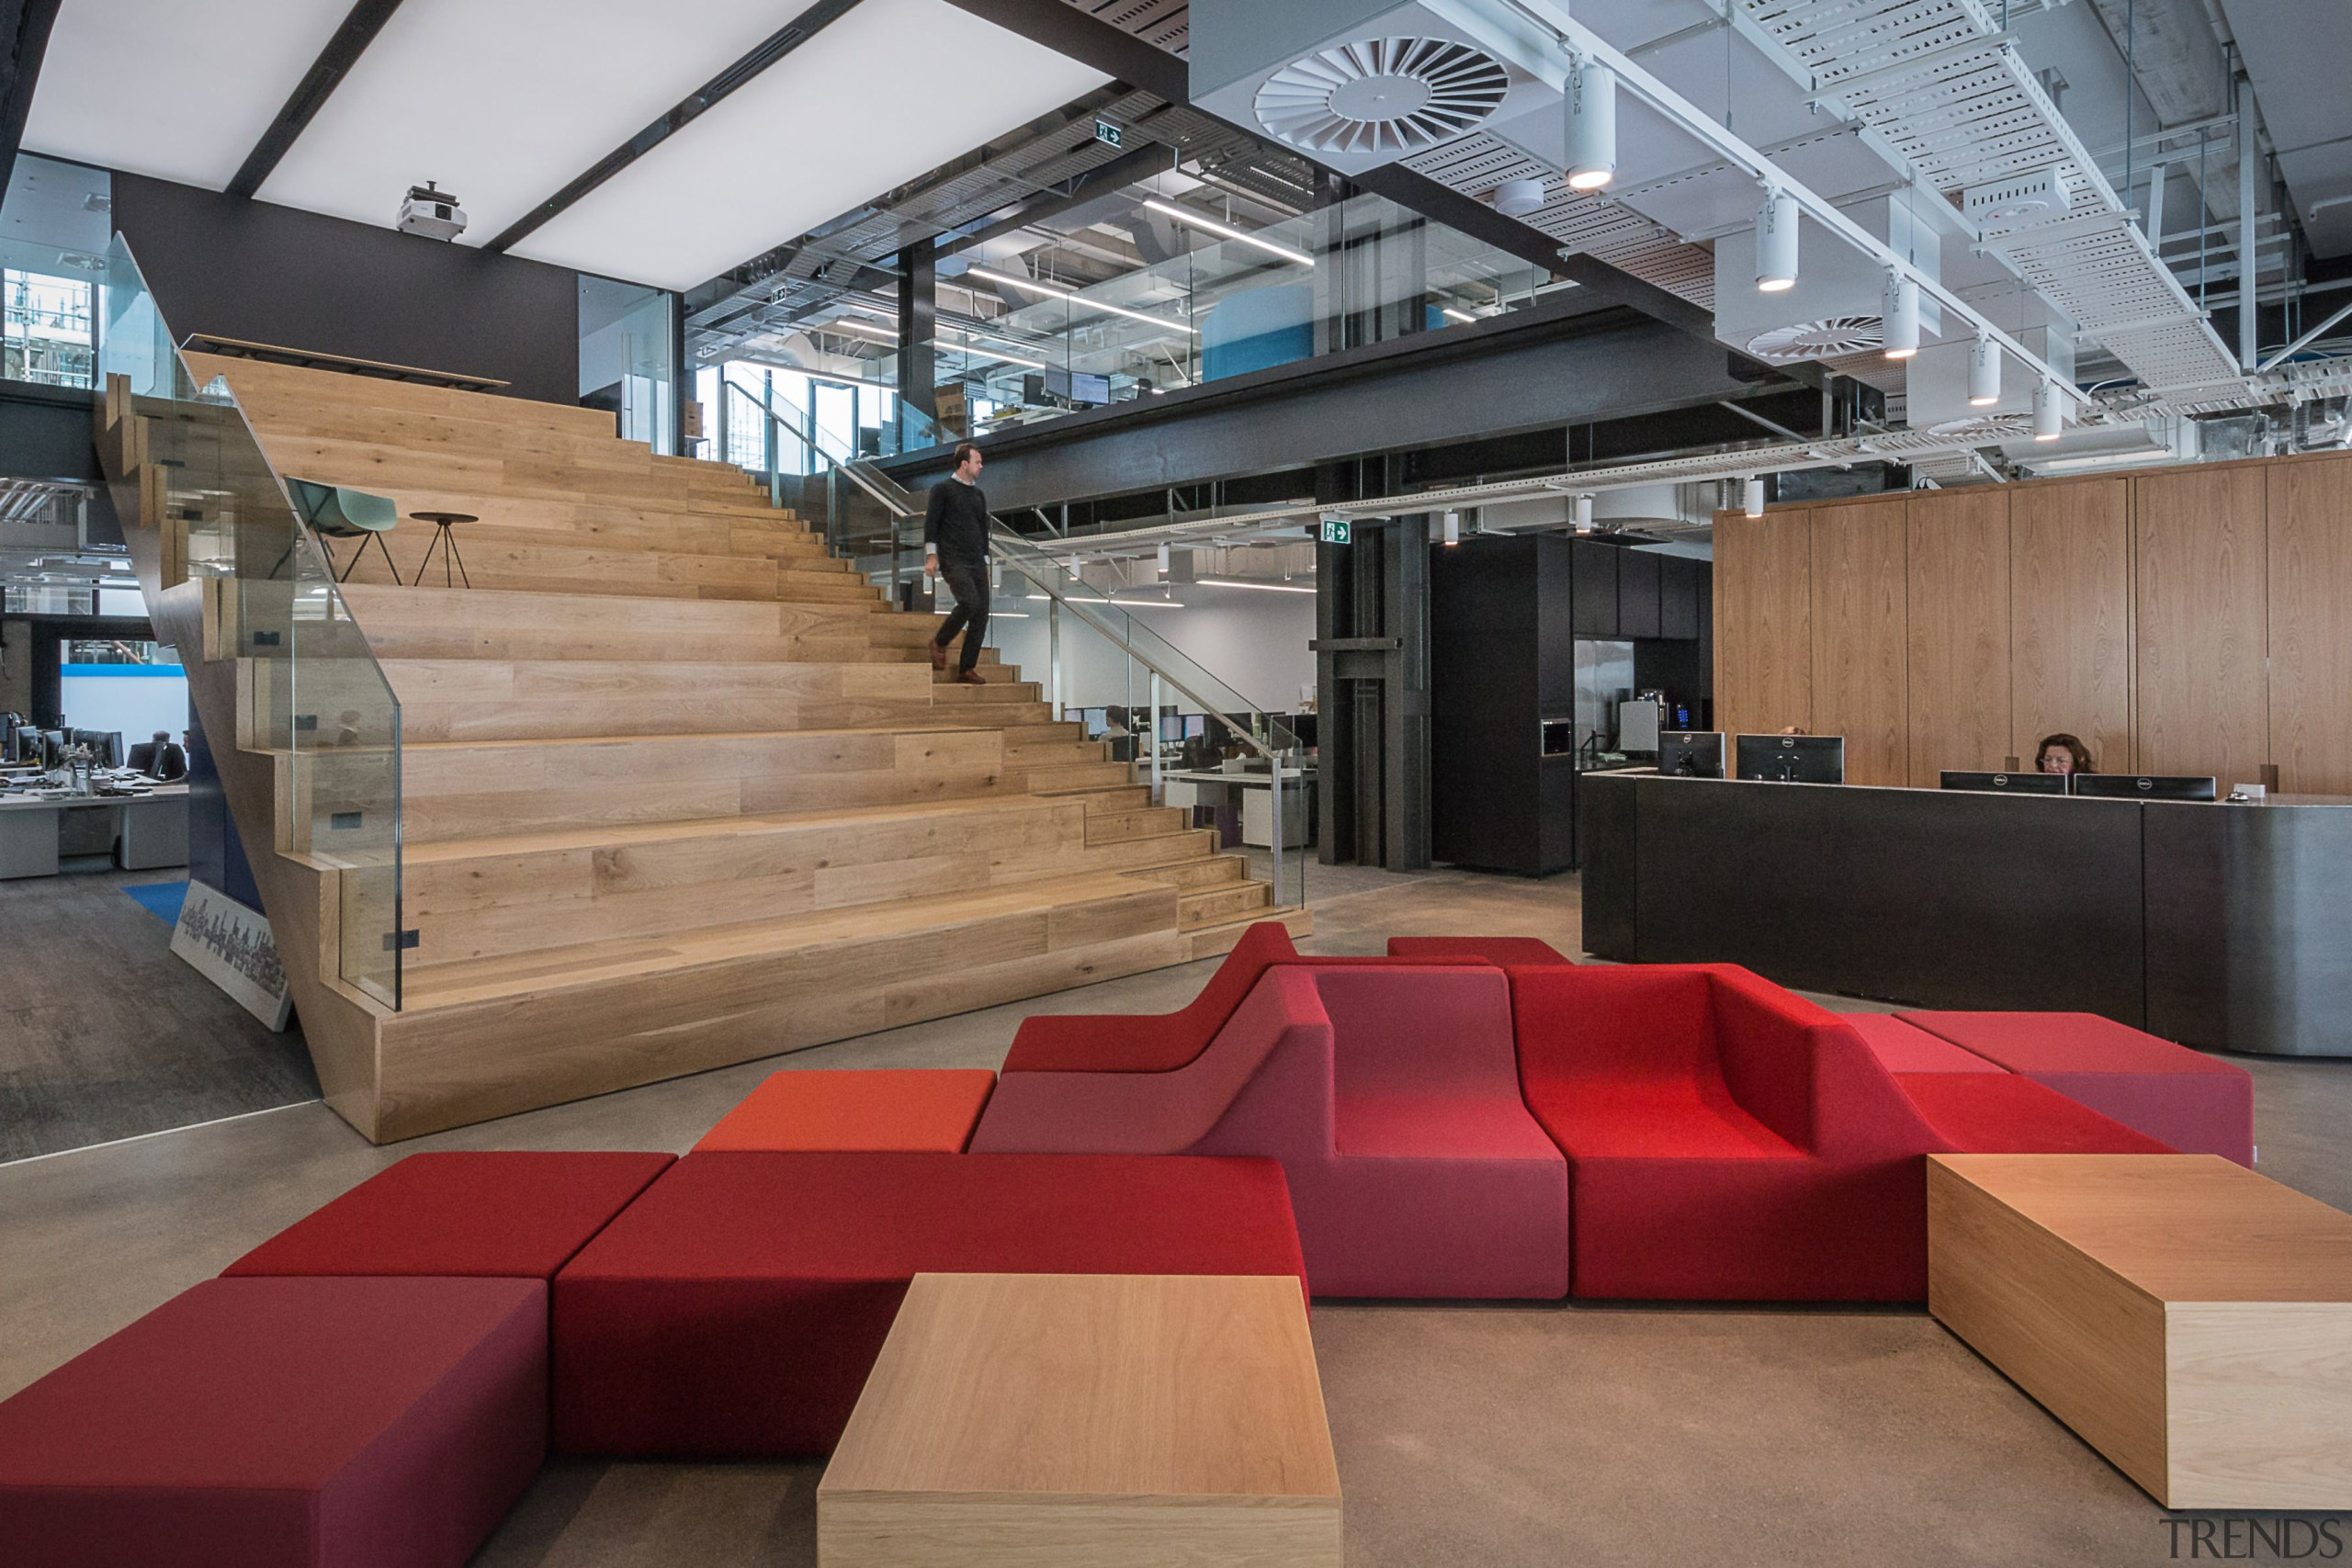 Colourful modular furniture, a timber auditorium staircase and architecture, floor, furniture, interior design, table, wood, gray